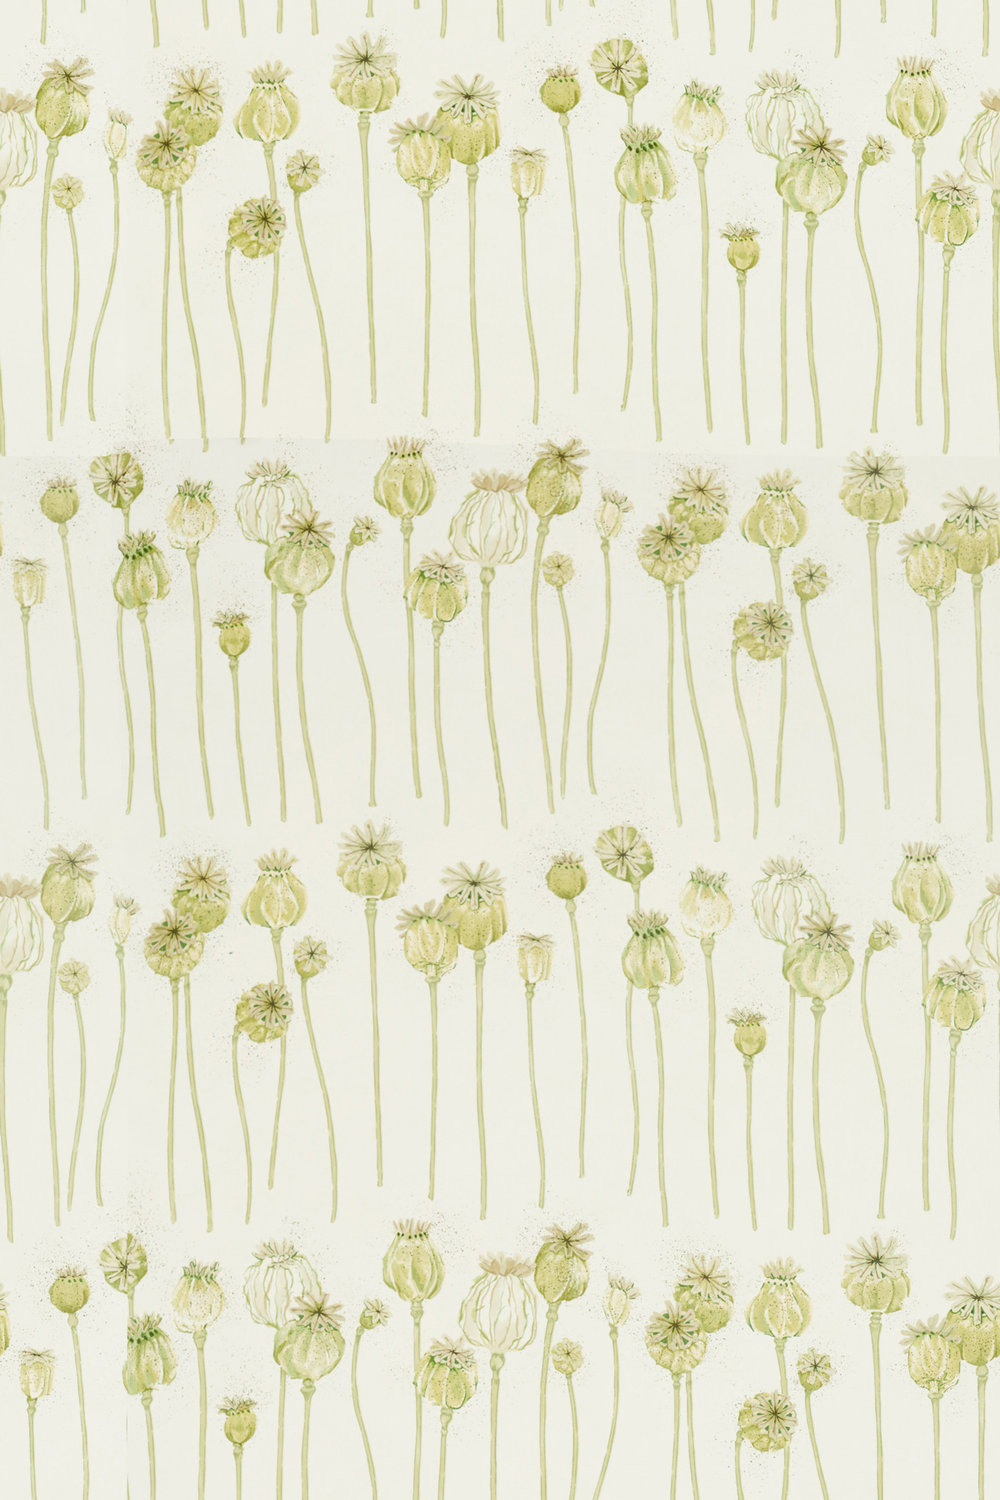 Sanderson Poppy Pods Olive and Almond Fabric - Product code: 226431